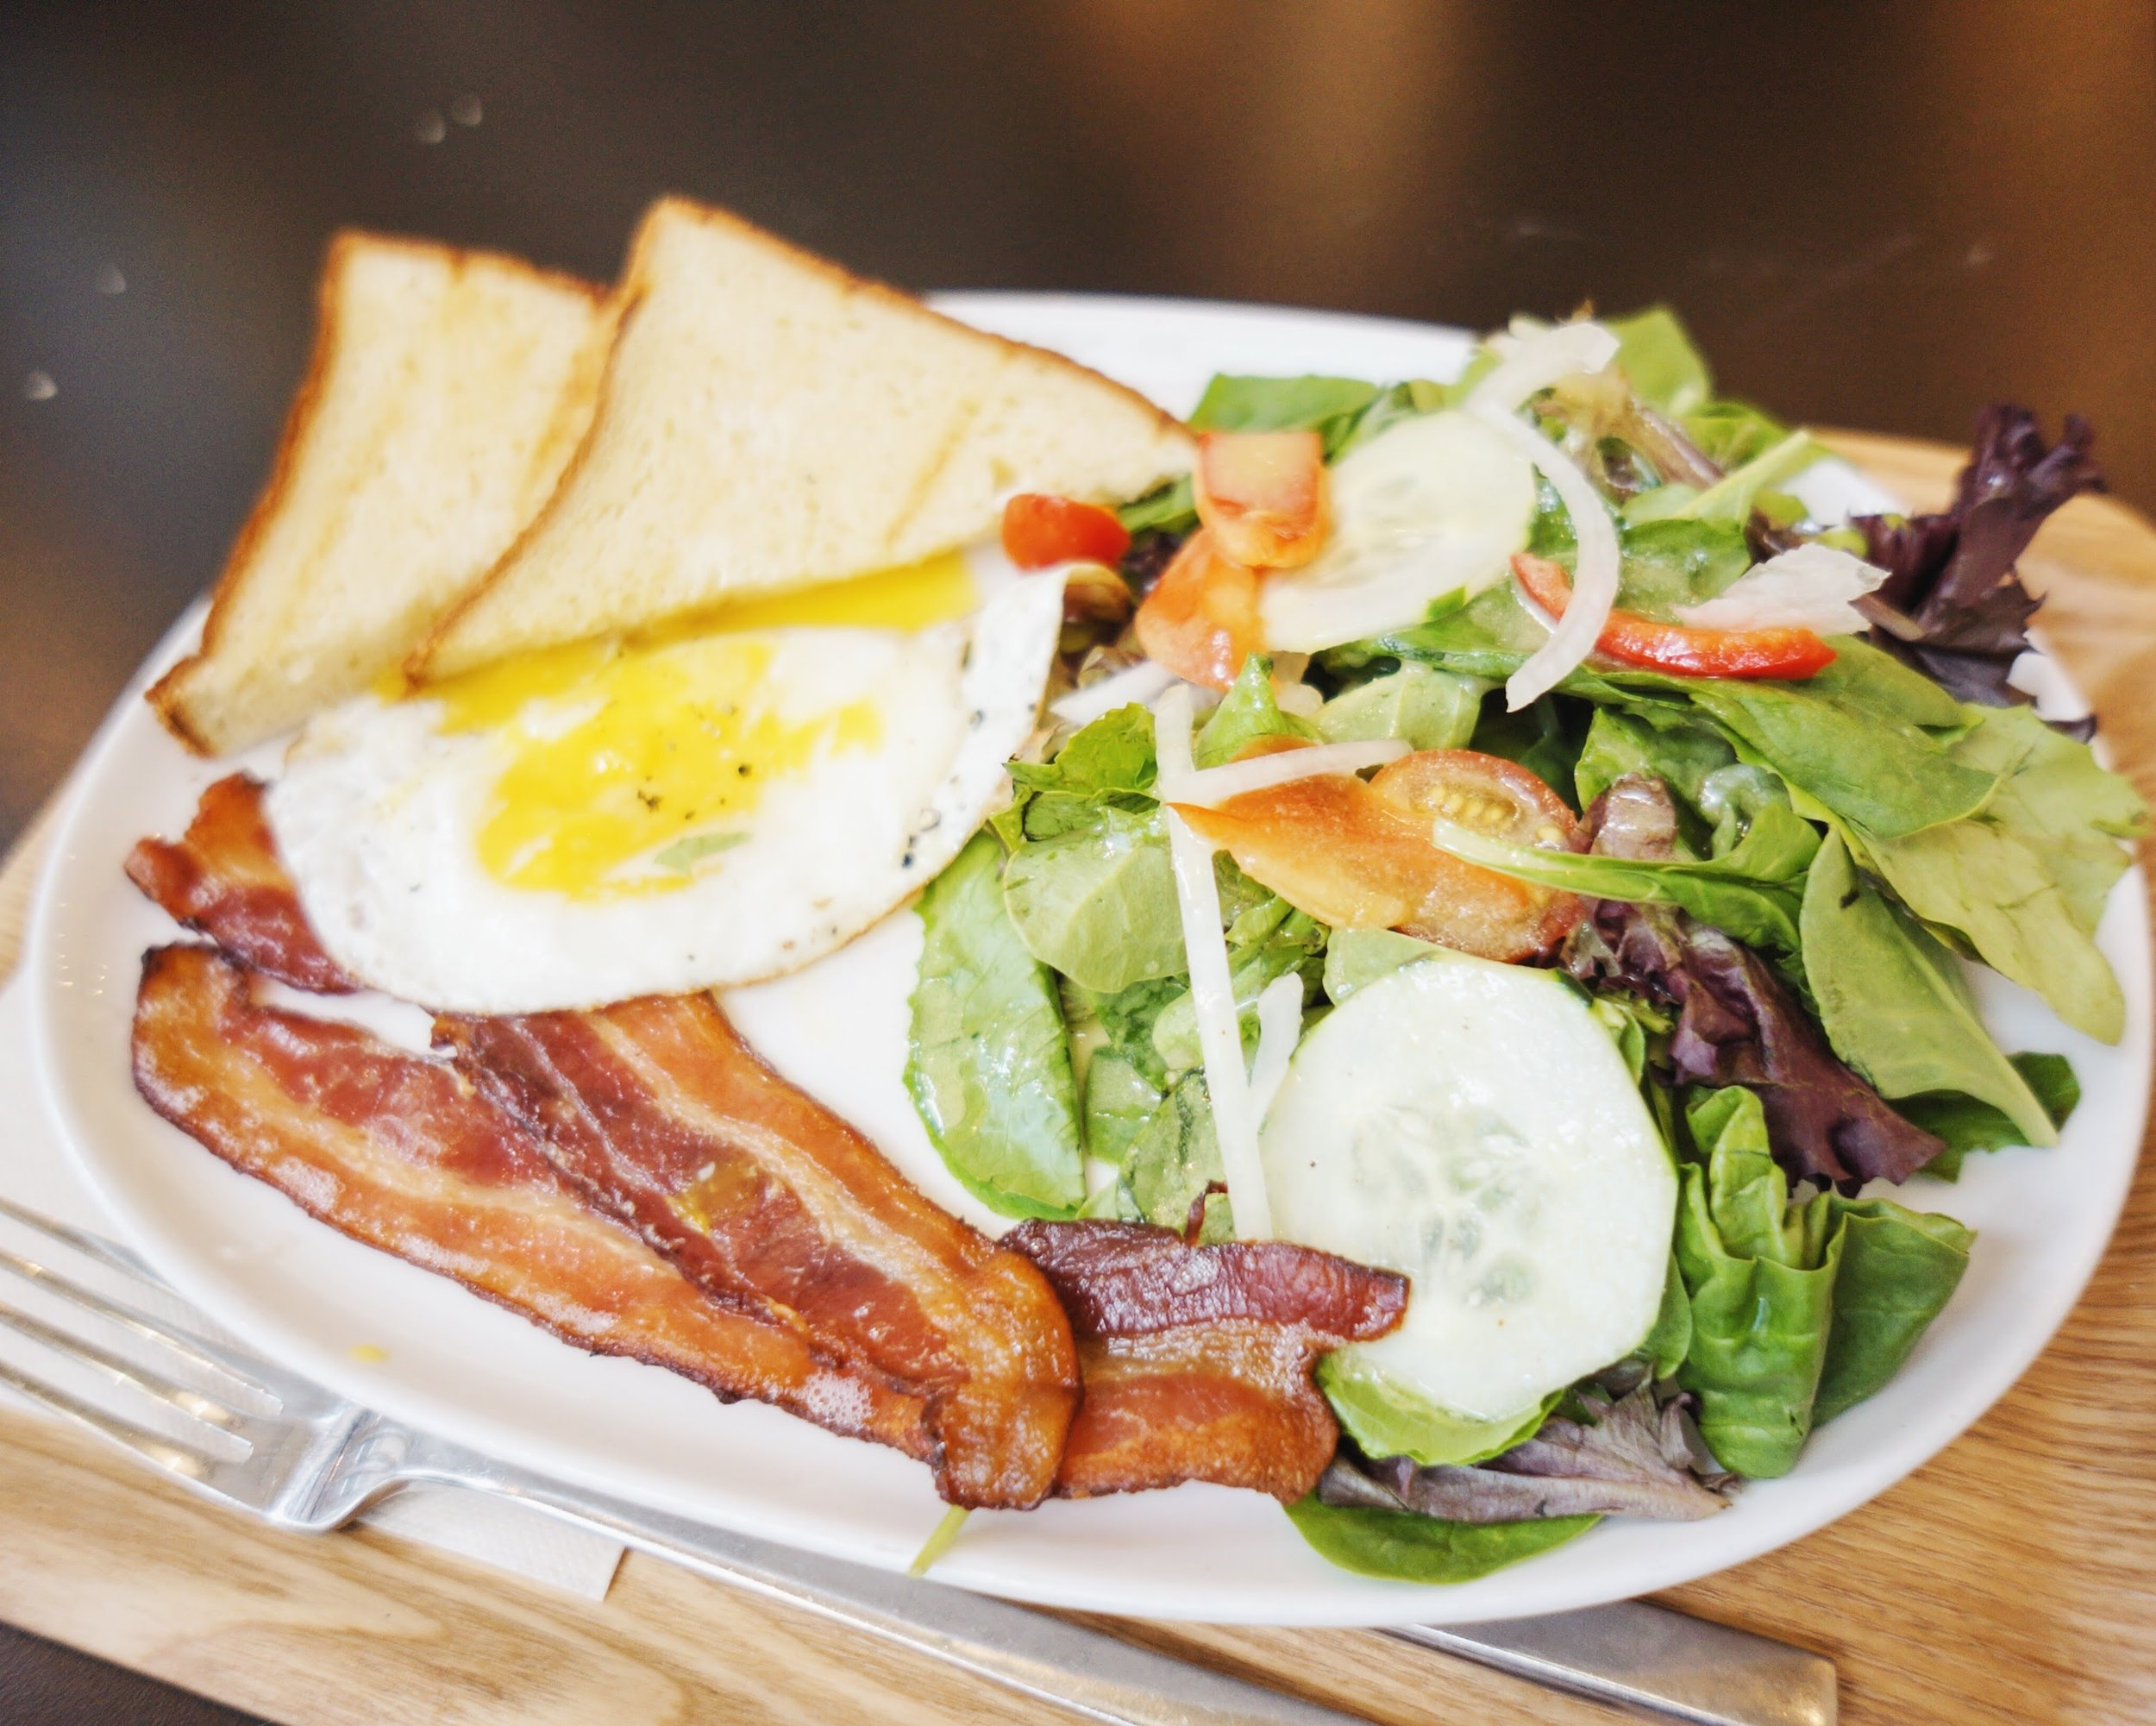 Breakfast special - simple and delicious